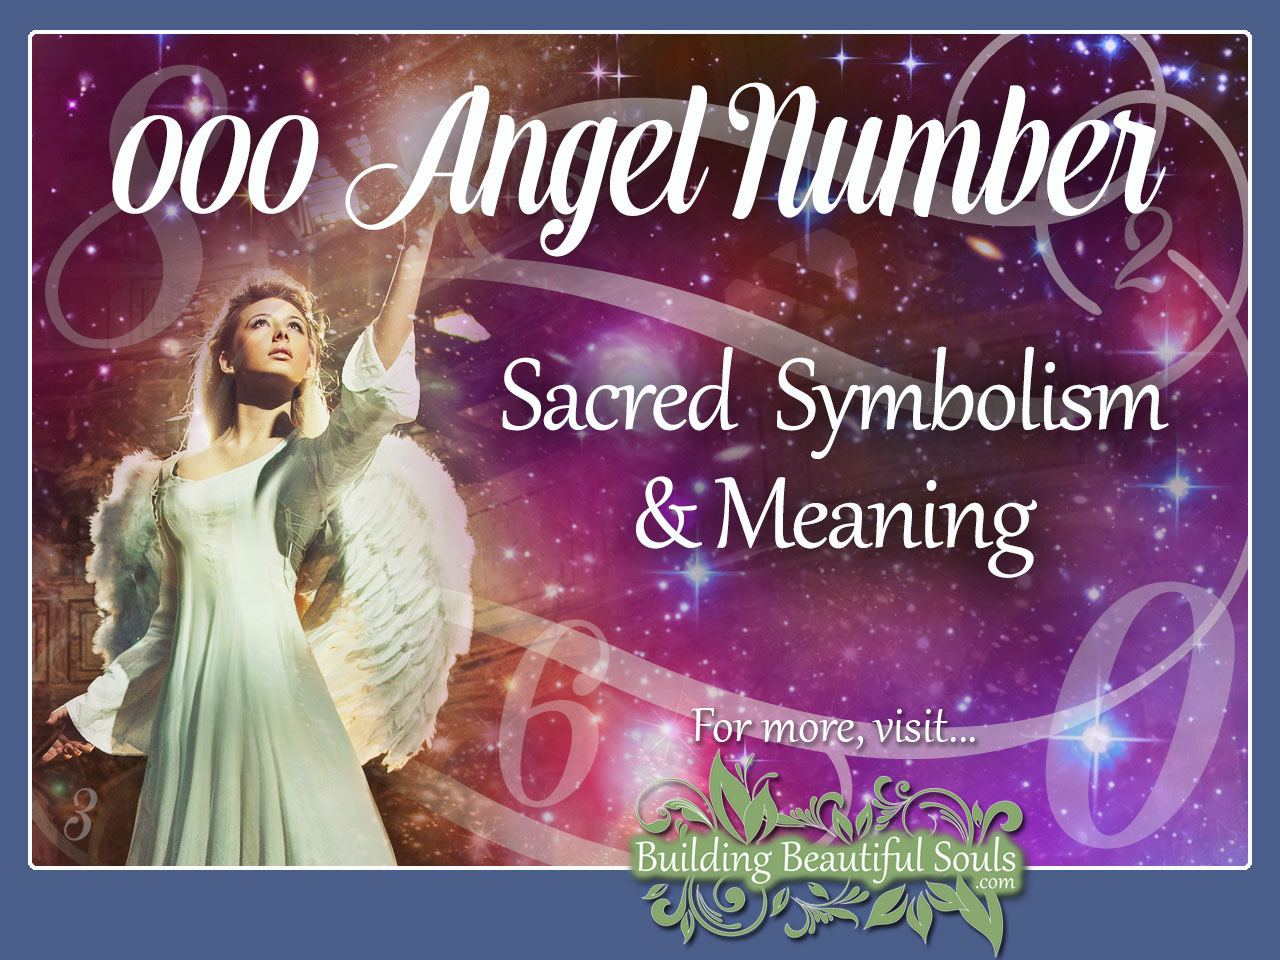 000 Angel Number Meaning 1280x960